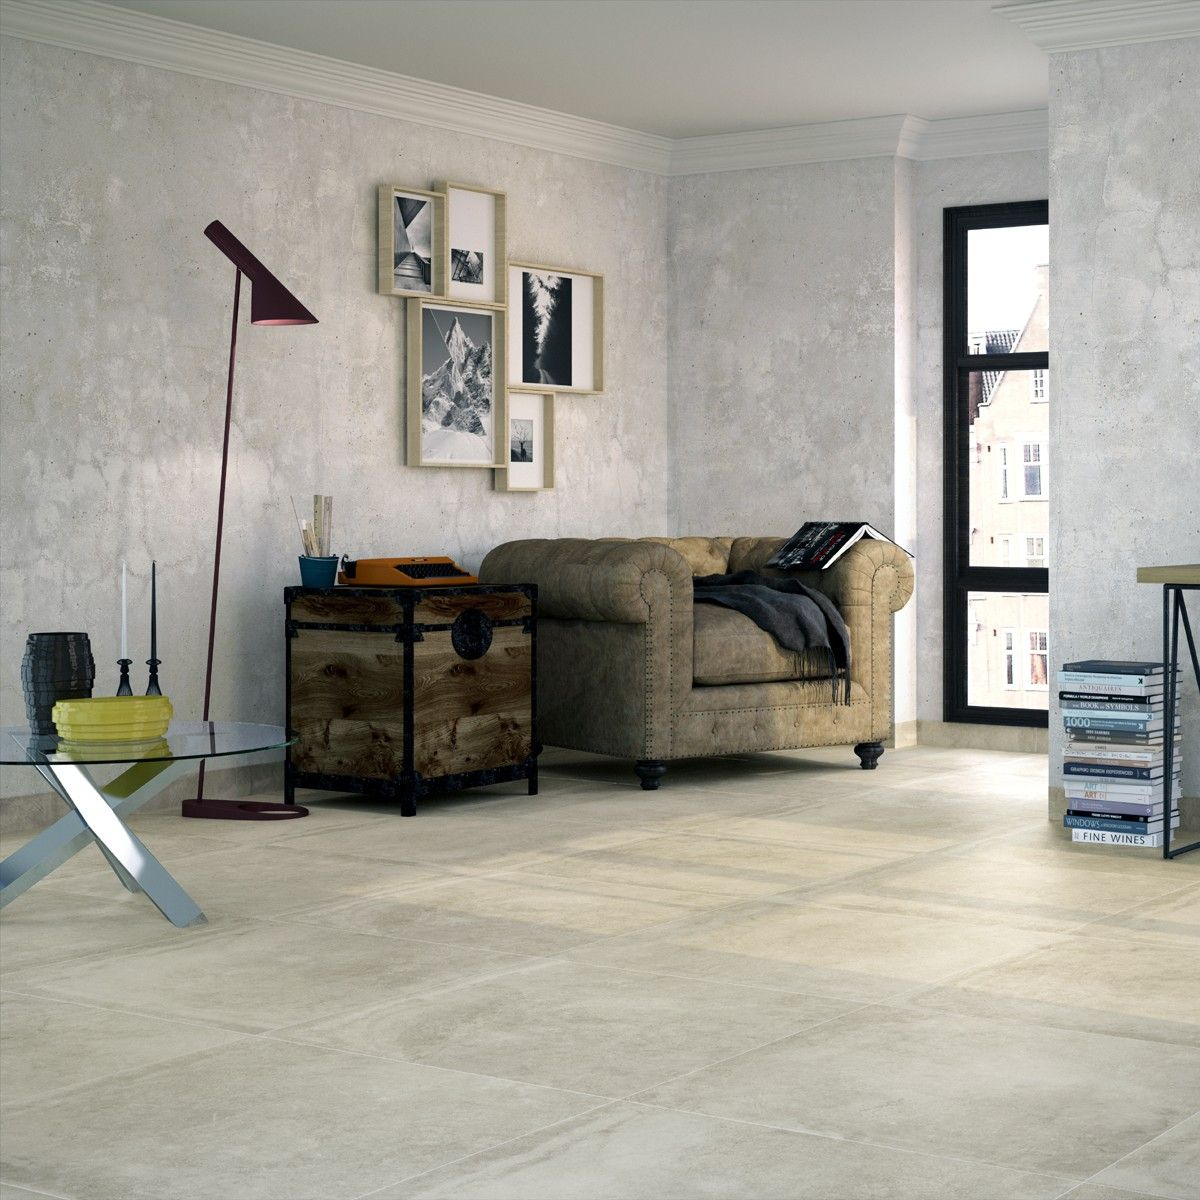 Crown tiles 80x80 monza cream crown tiles large format tiles large range of ceramic patterned floor tiles from tile choice with next day delivery discounts on the cannes cream floor tile dailygadgetfo Choice Image